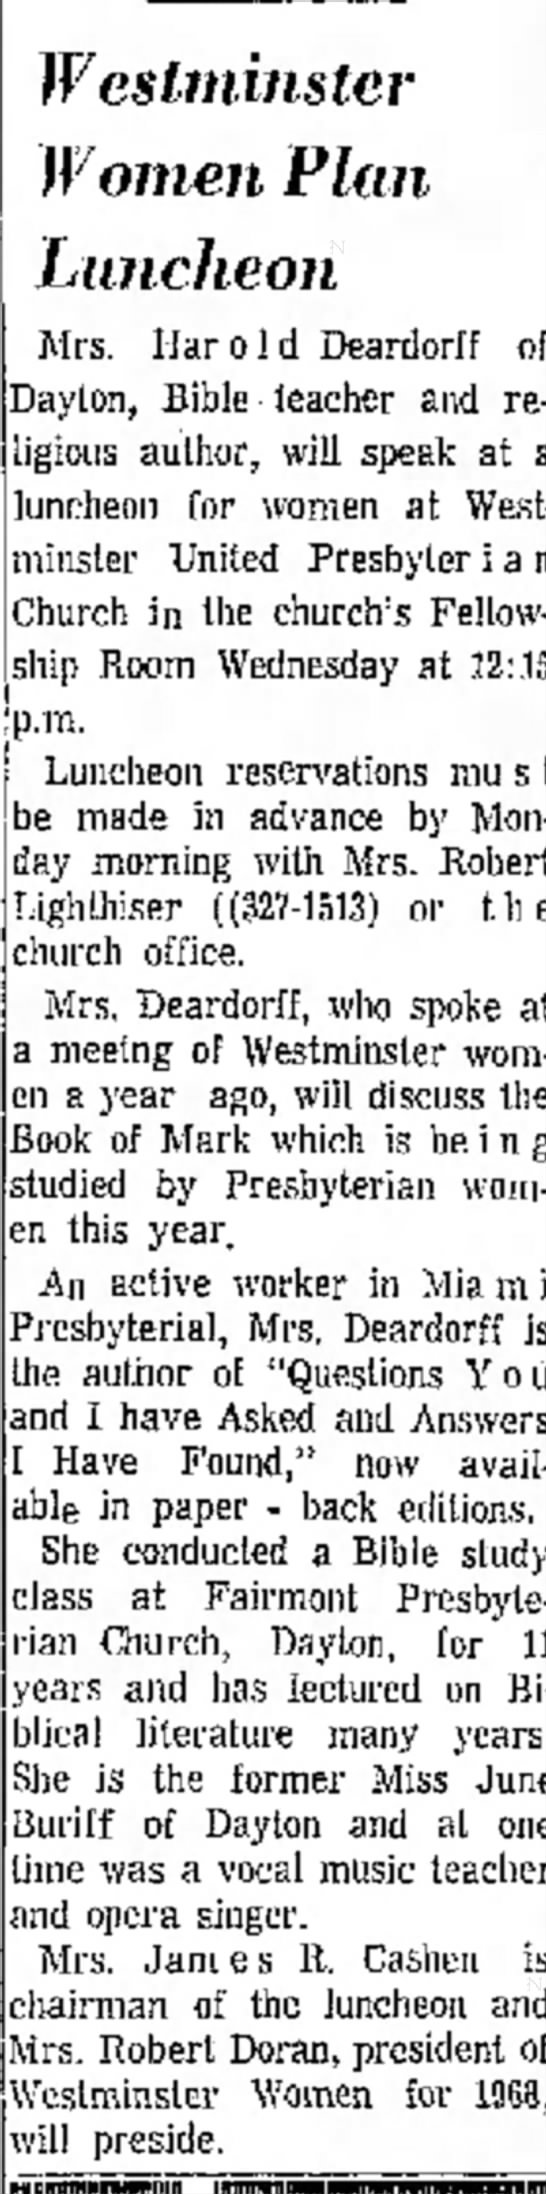 Deardorff - June Buriff Xenia Daily Gazette (Xenia, Ohio) 8 March 1968 p 2 -